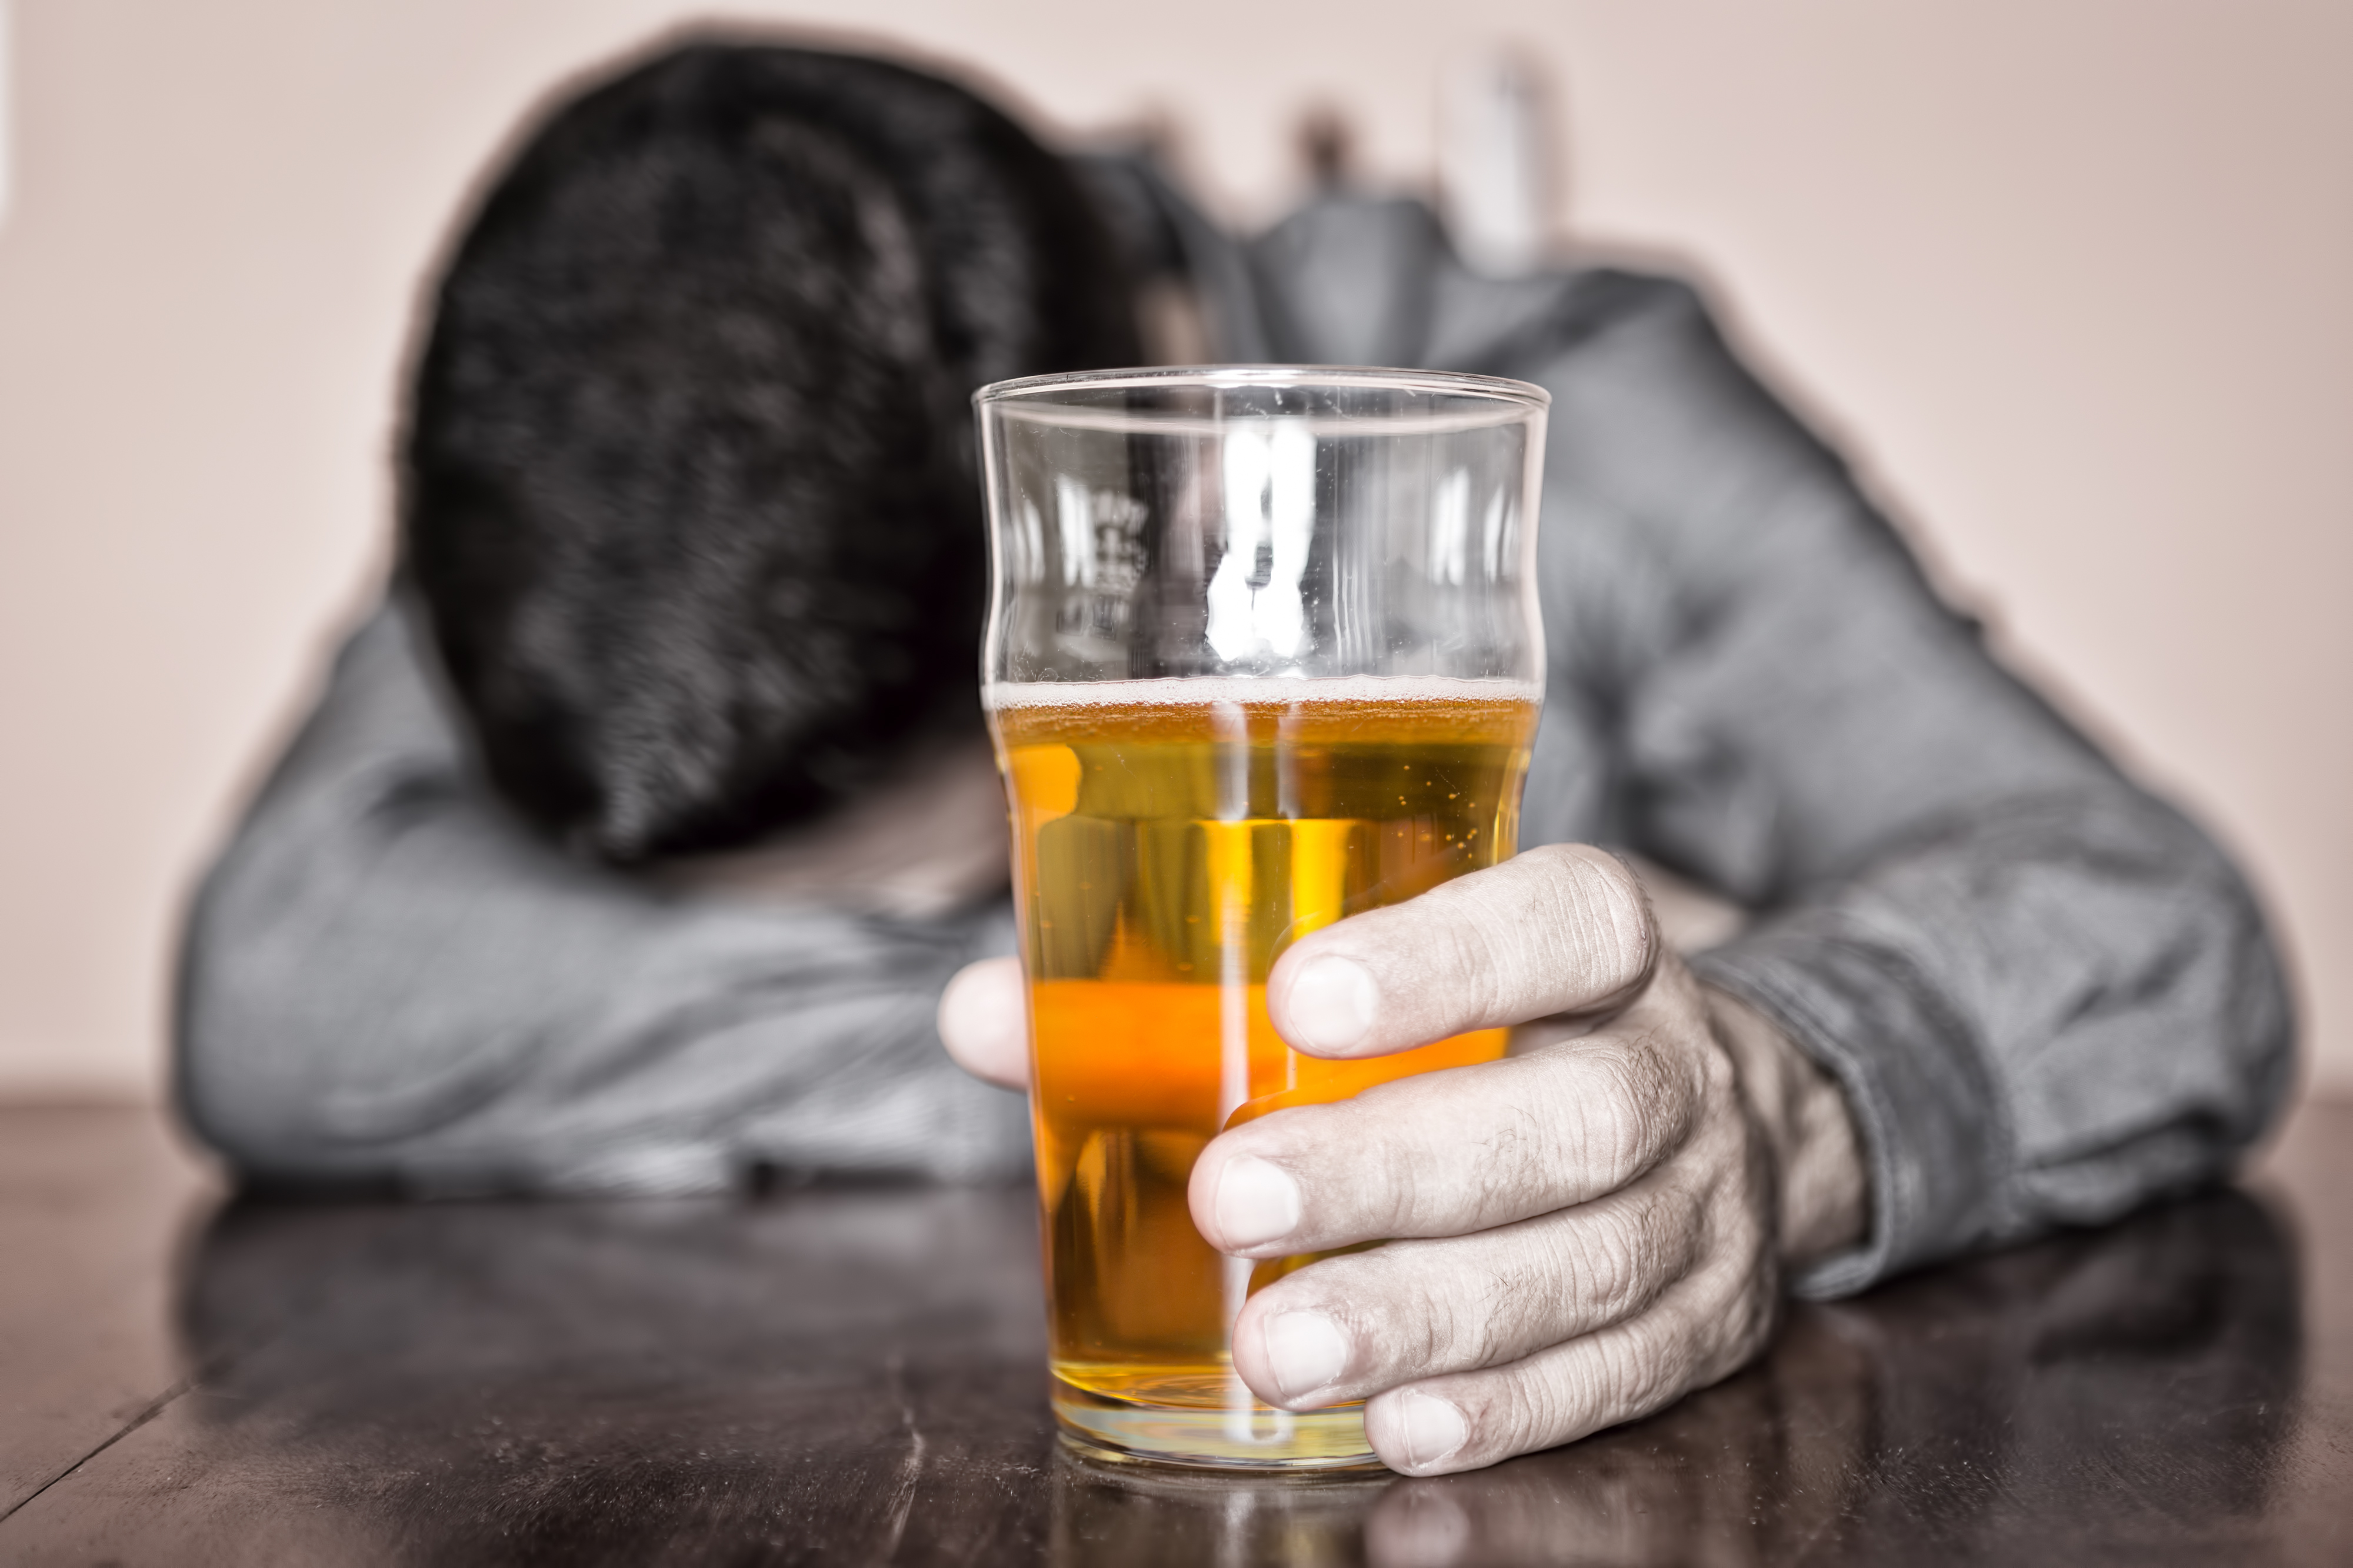 7 Signs You Might Have A Drinking Problem